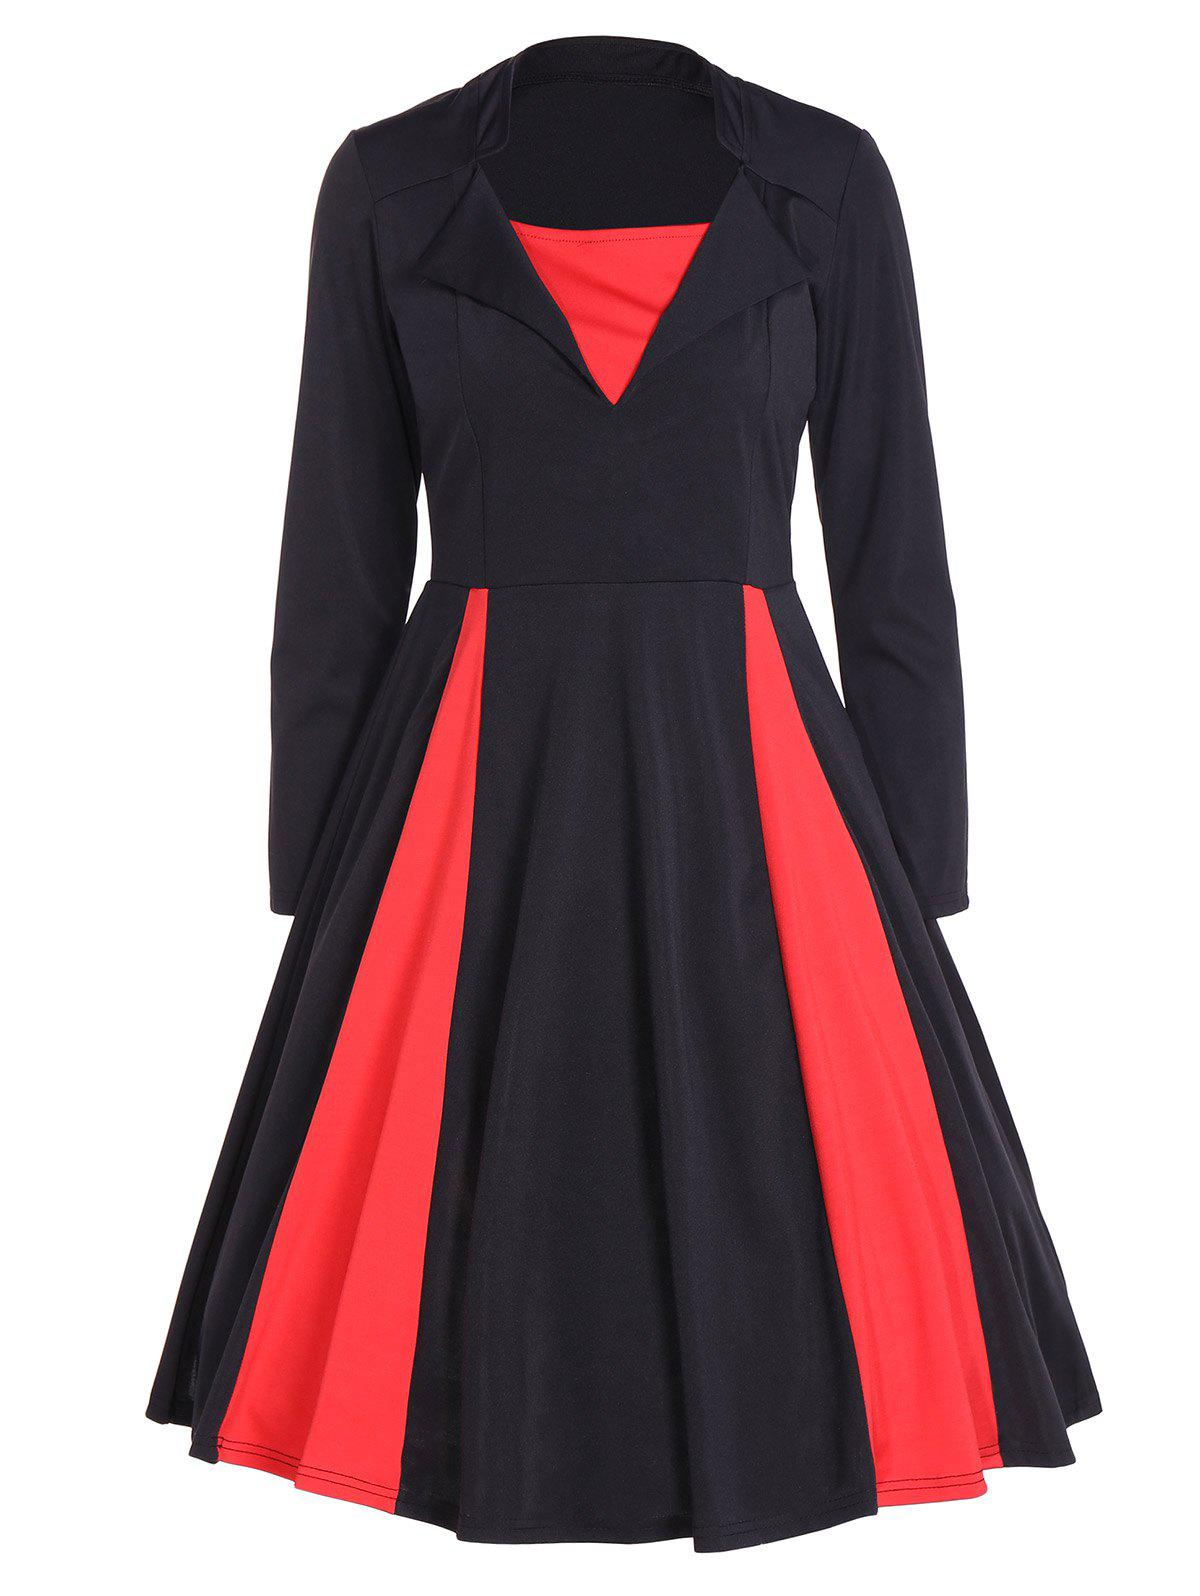 Store Vintage Color Block Long Sleeve Pin Up Dress